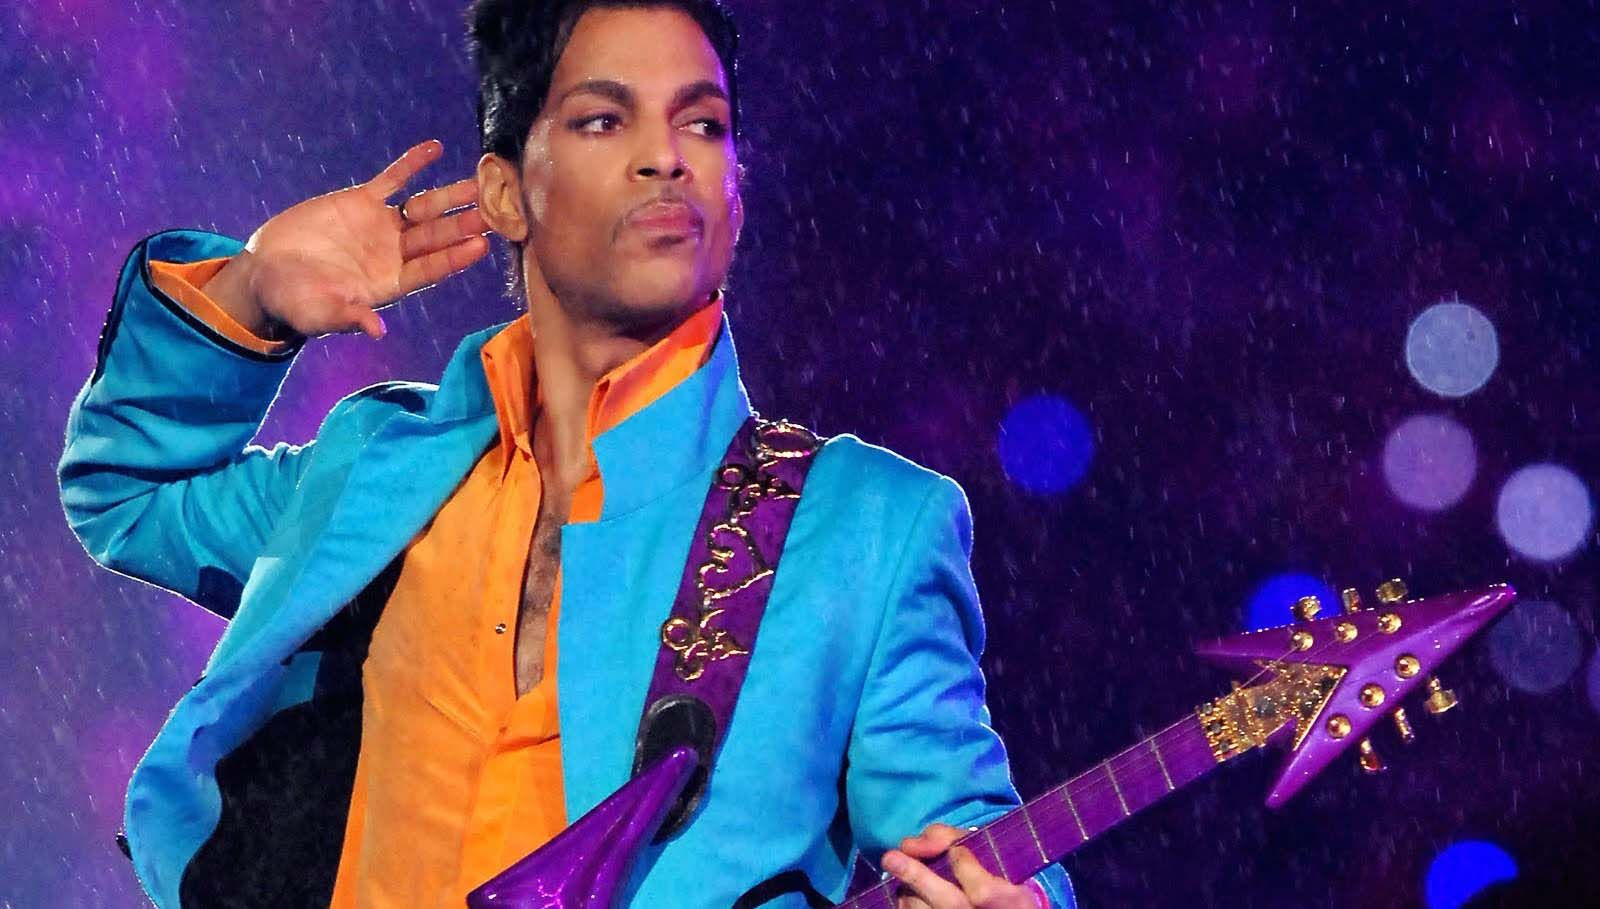 Top 15 Things You Didn't Know About Prince